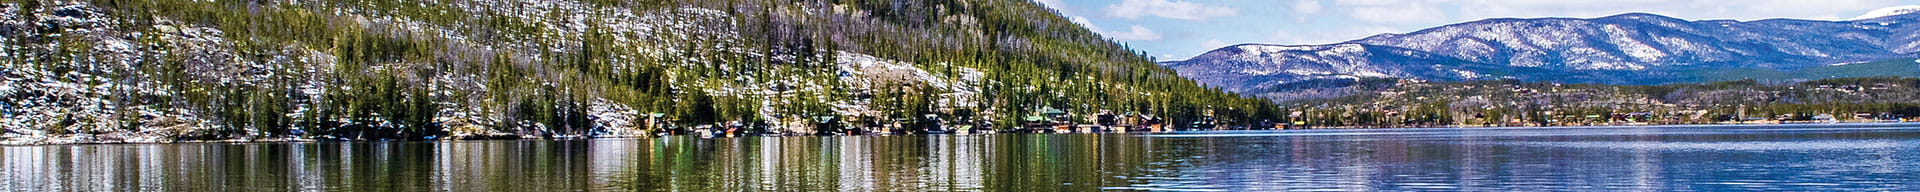 Colorado-mountain-lake